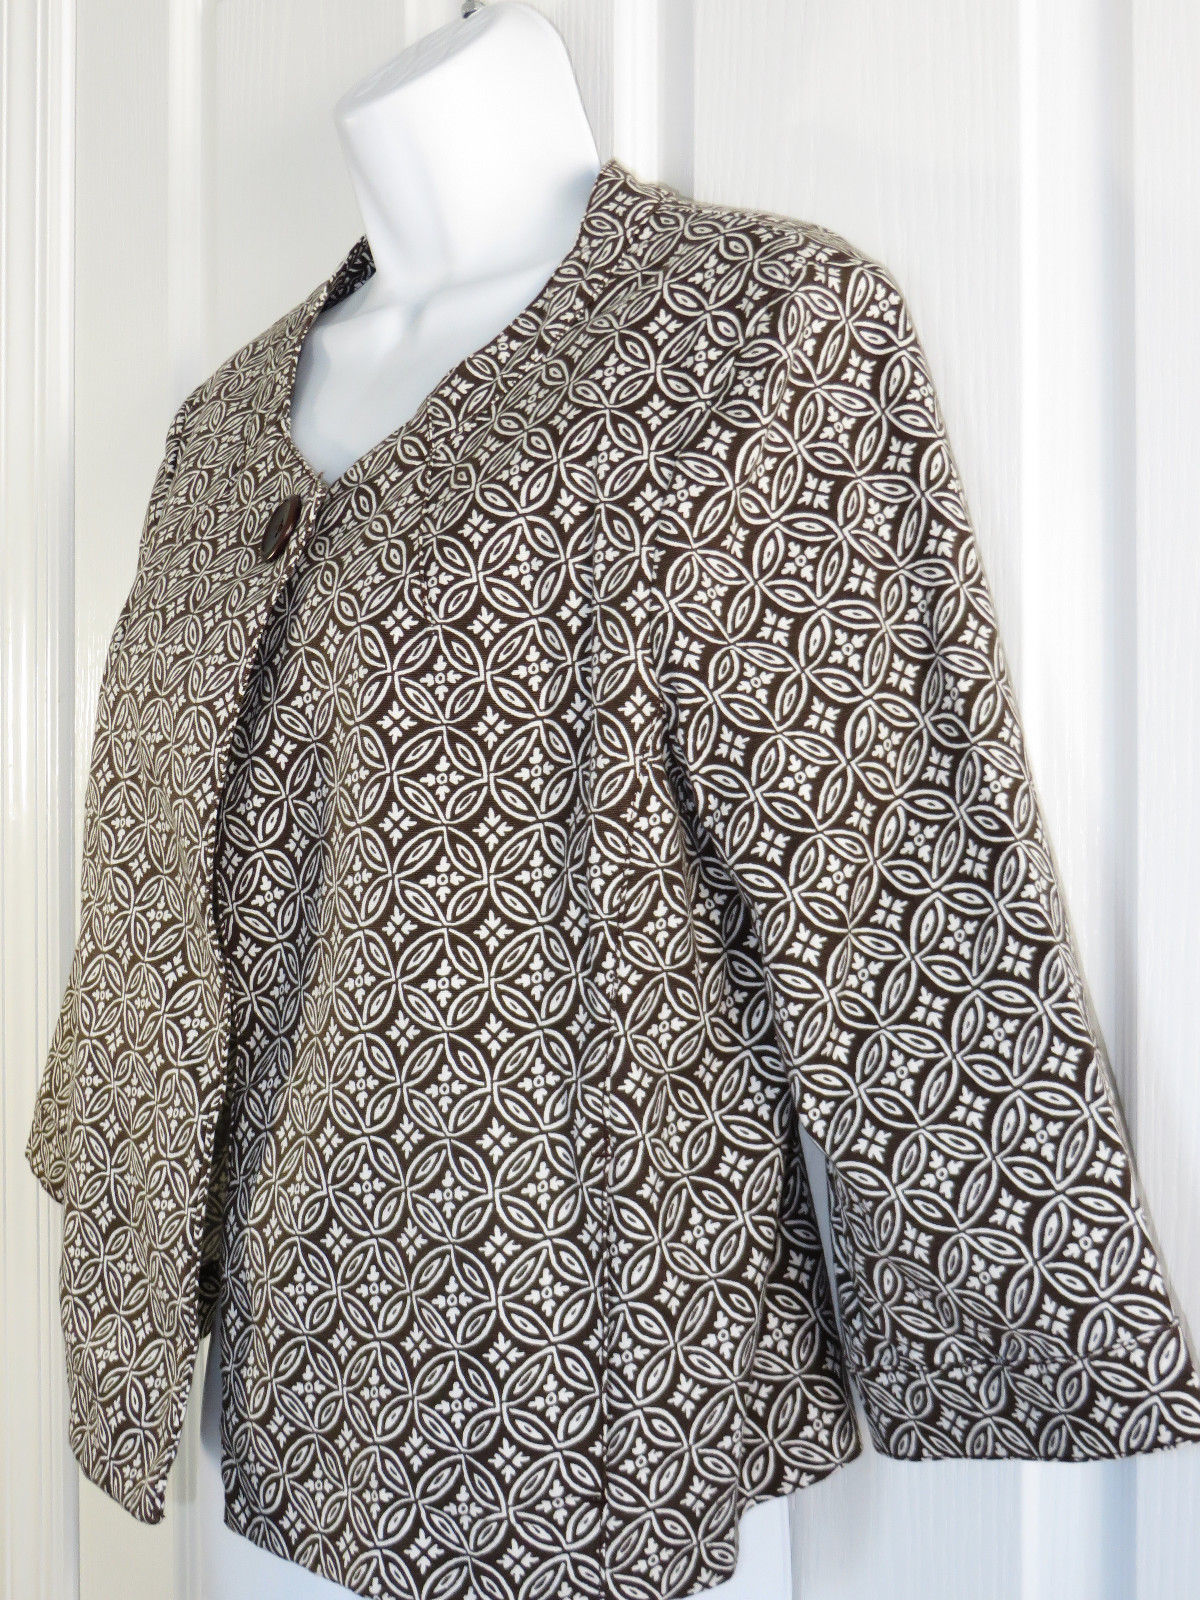 Talbots Swing Blazer Size 12 Brown One Button Unlined Cotton Twill 3/4 Sleeve